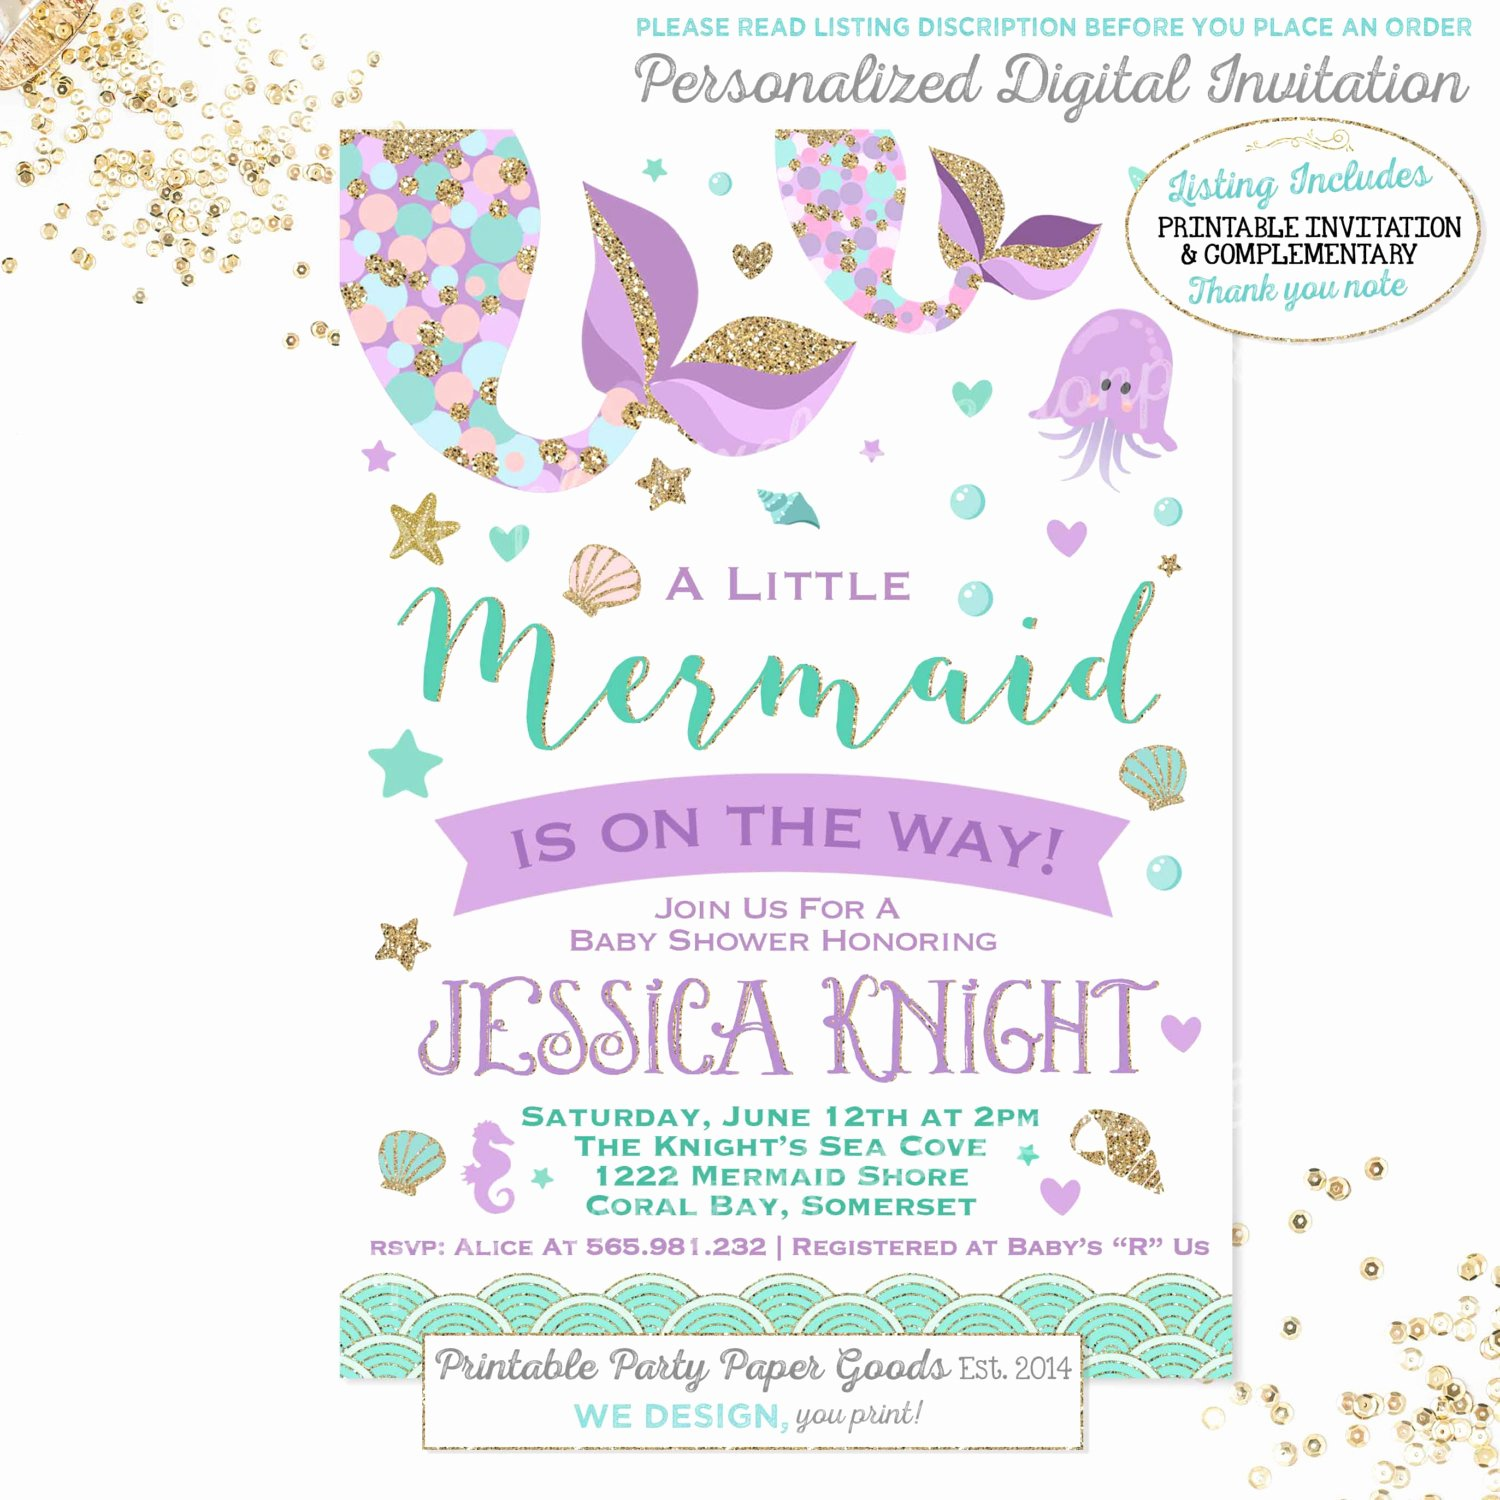 Mermaid Baby Shower Invitations Awesome Mermaid Baby Shower Invitation Little Mermaid Baby Shower